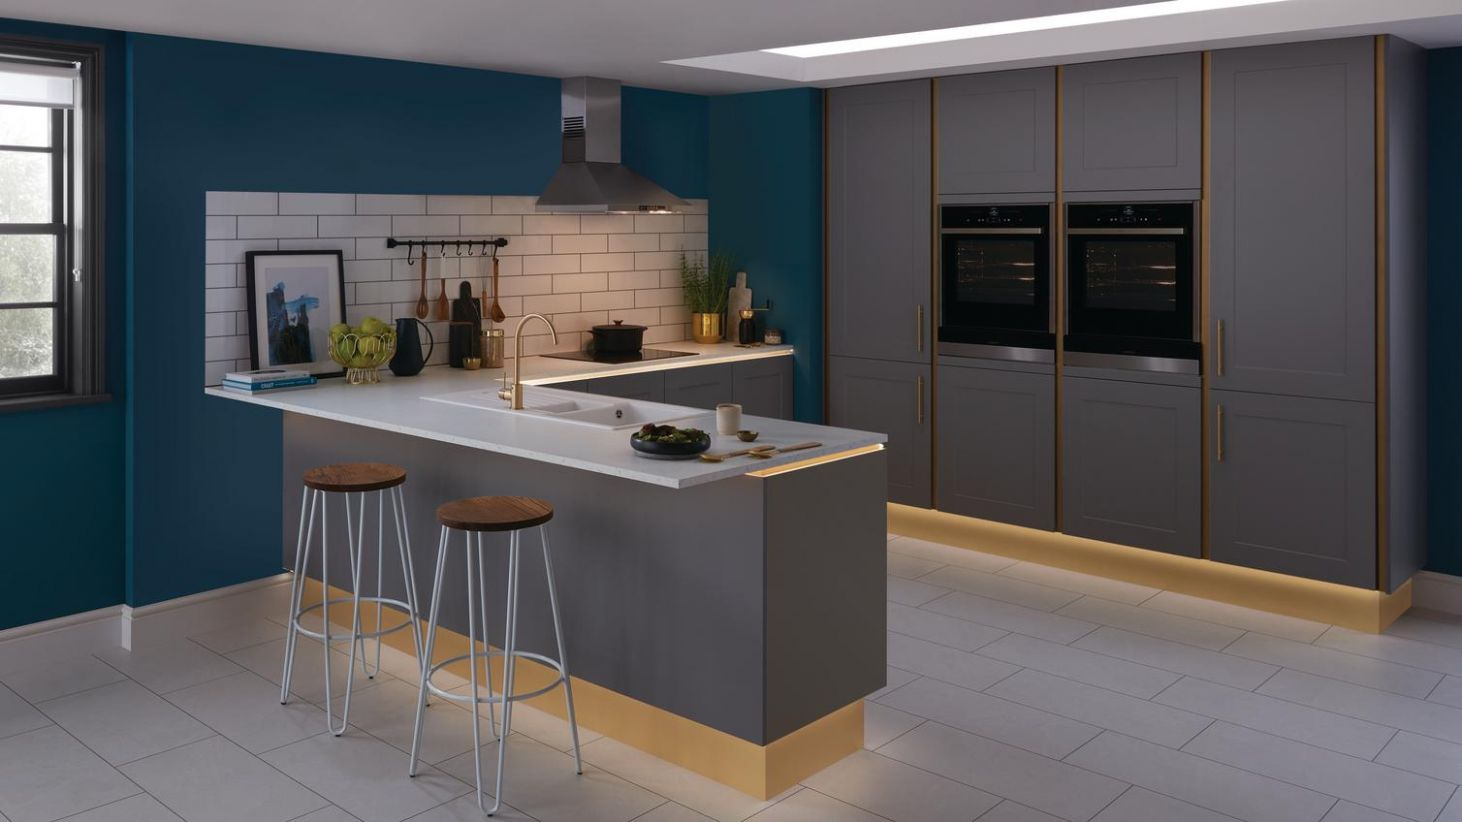 Kitchen Extensions Guide: Ideas, Photos & Advice for Kitchen ..